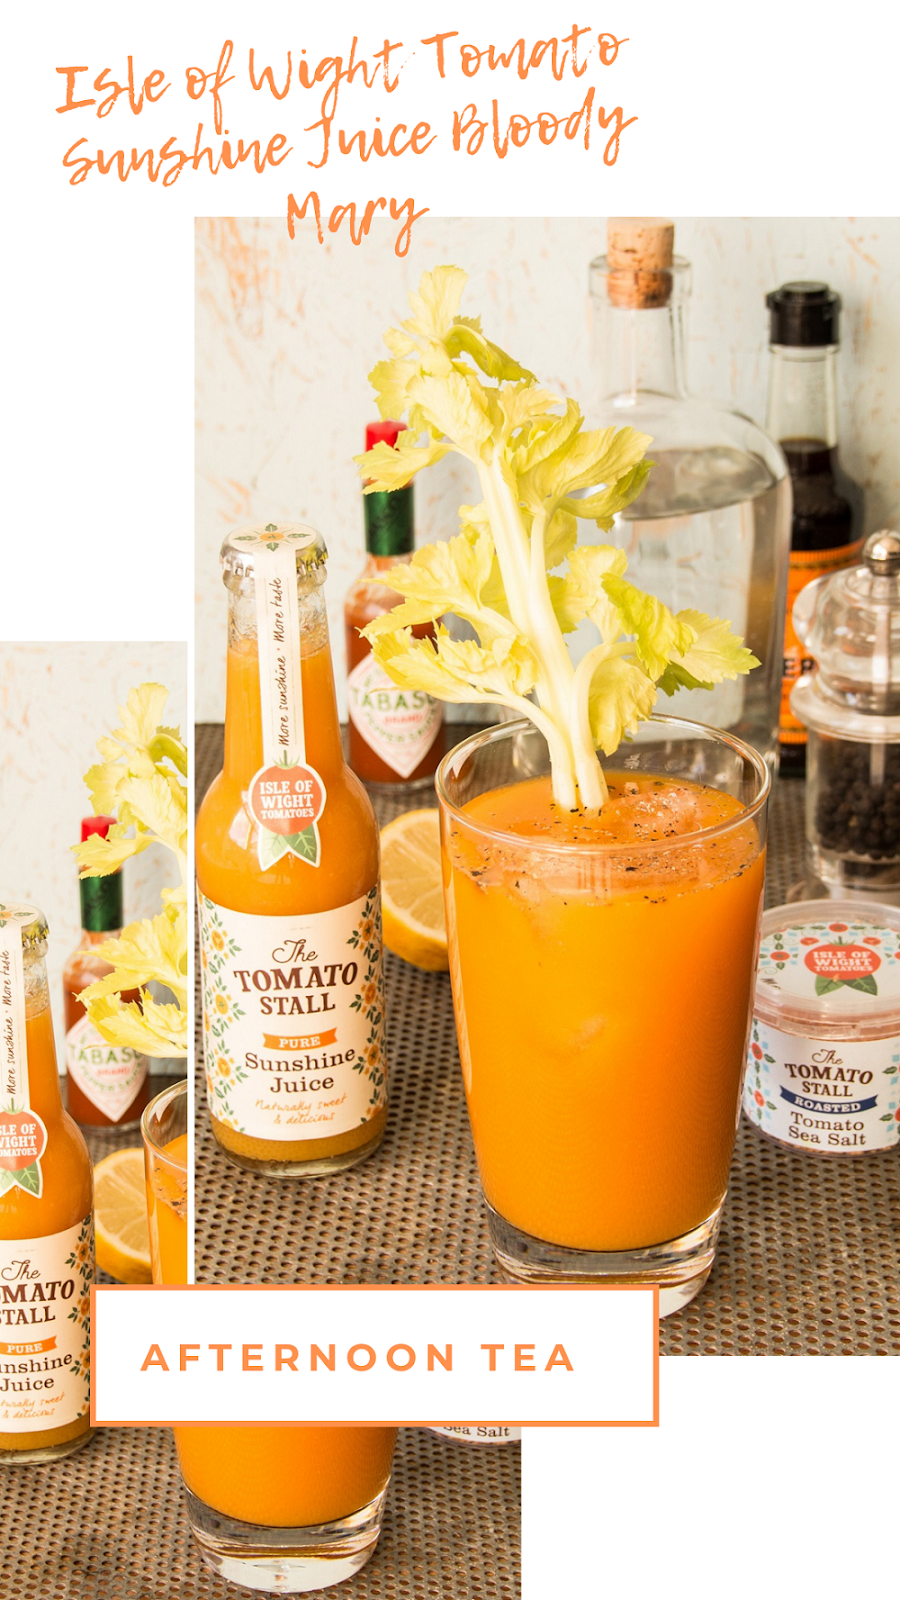 Isle of Wight Tomato Sunshine Juice Bloody Mary